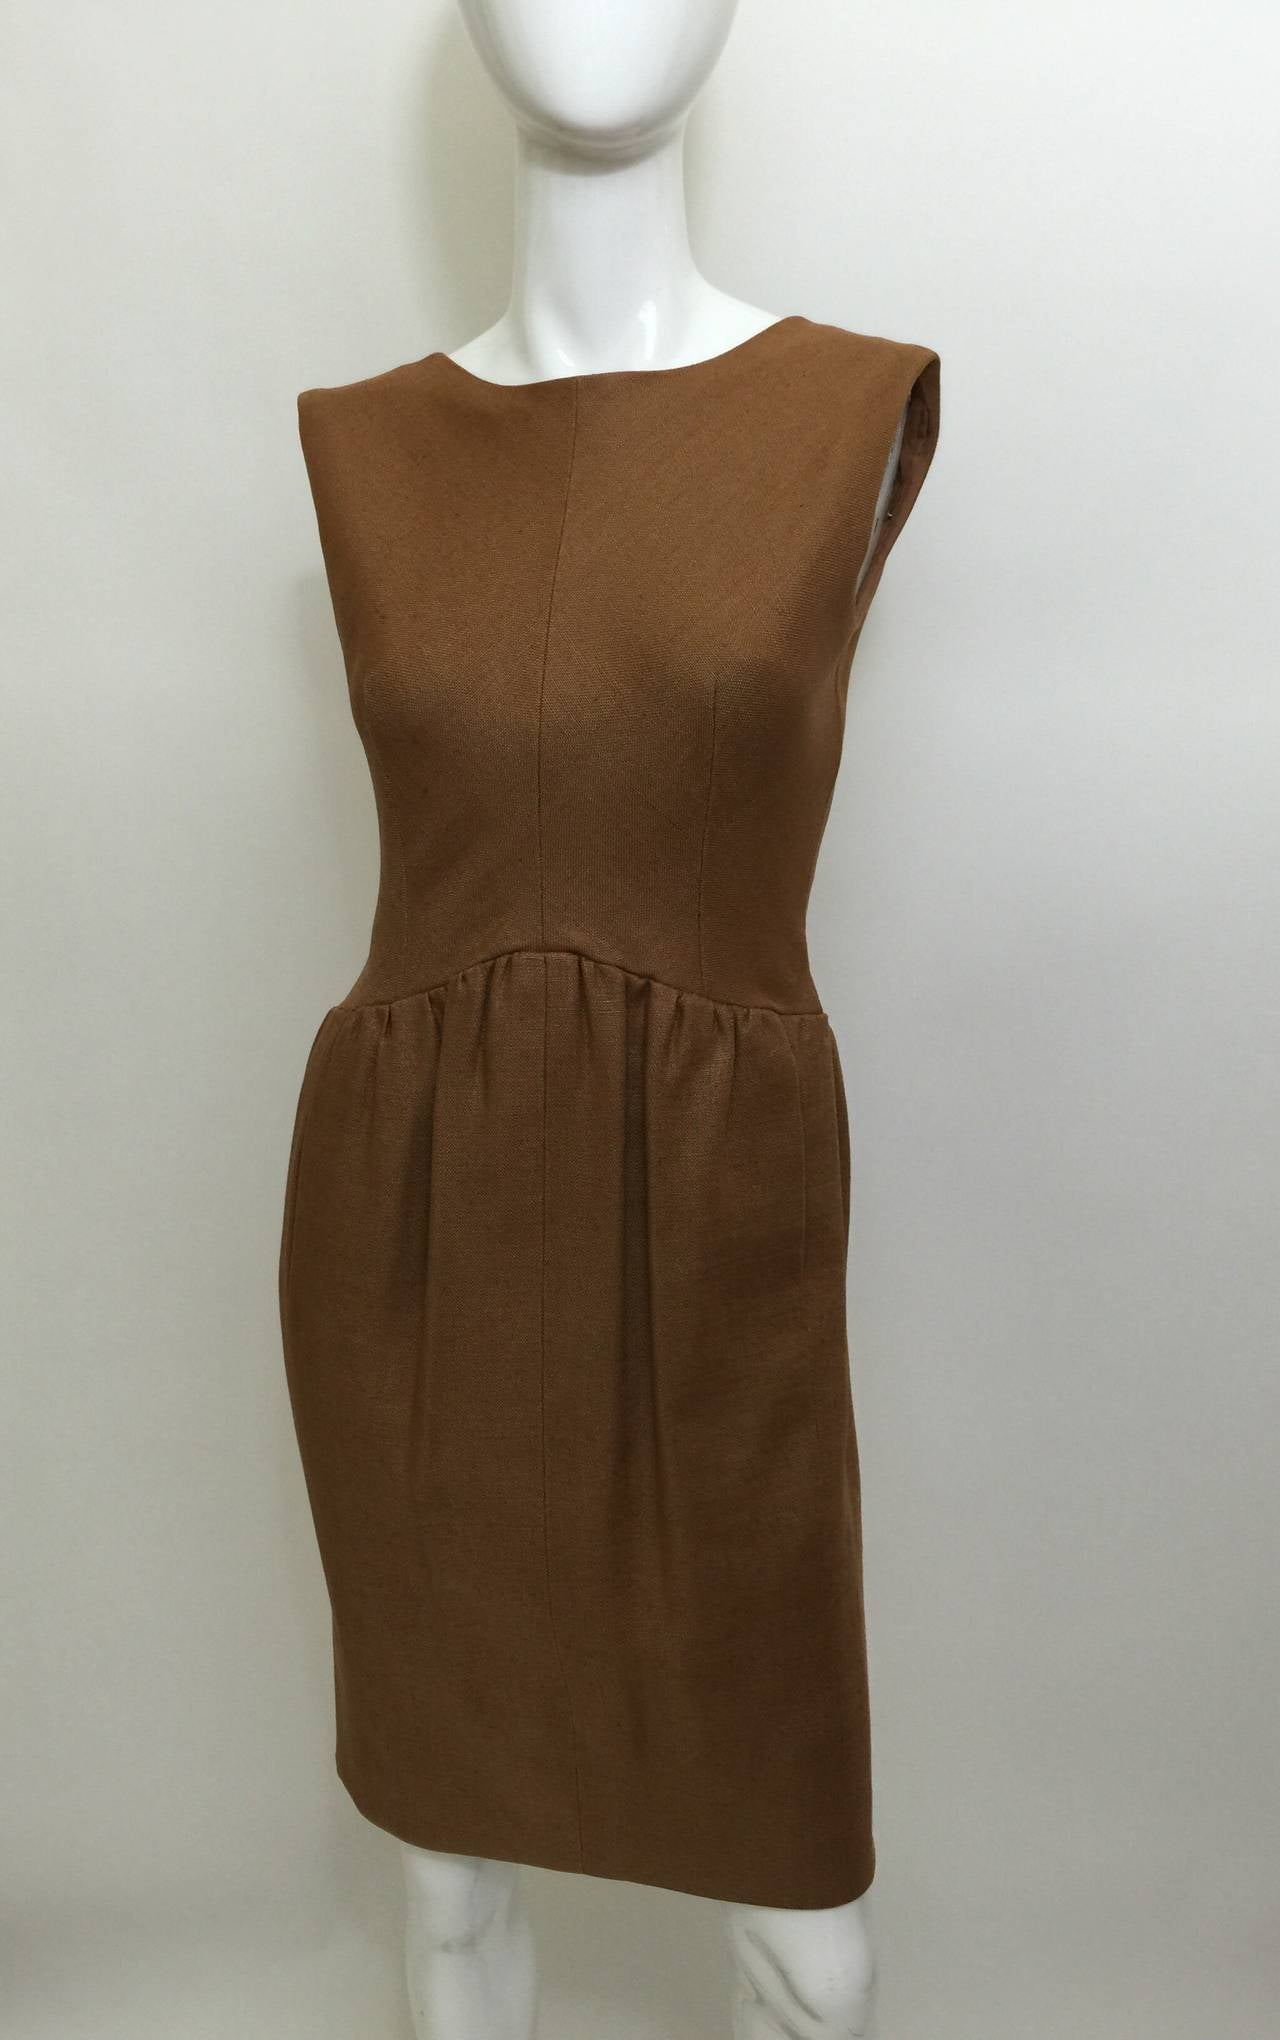 c.1961 Norman Norell Dress as seen on Jacqueline Kennedy  In Excellent Condition For Sale In Boca Raton, FL